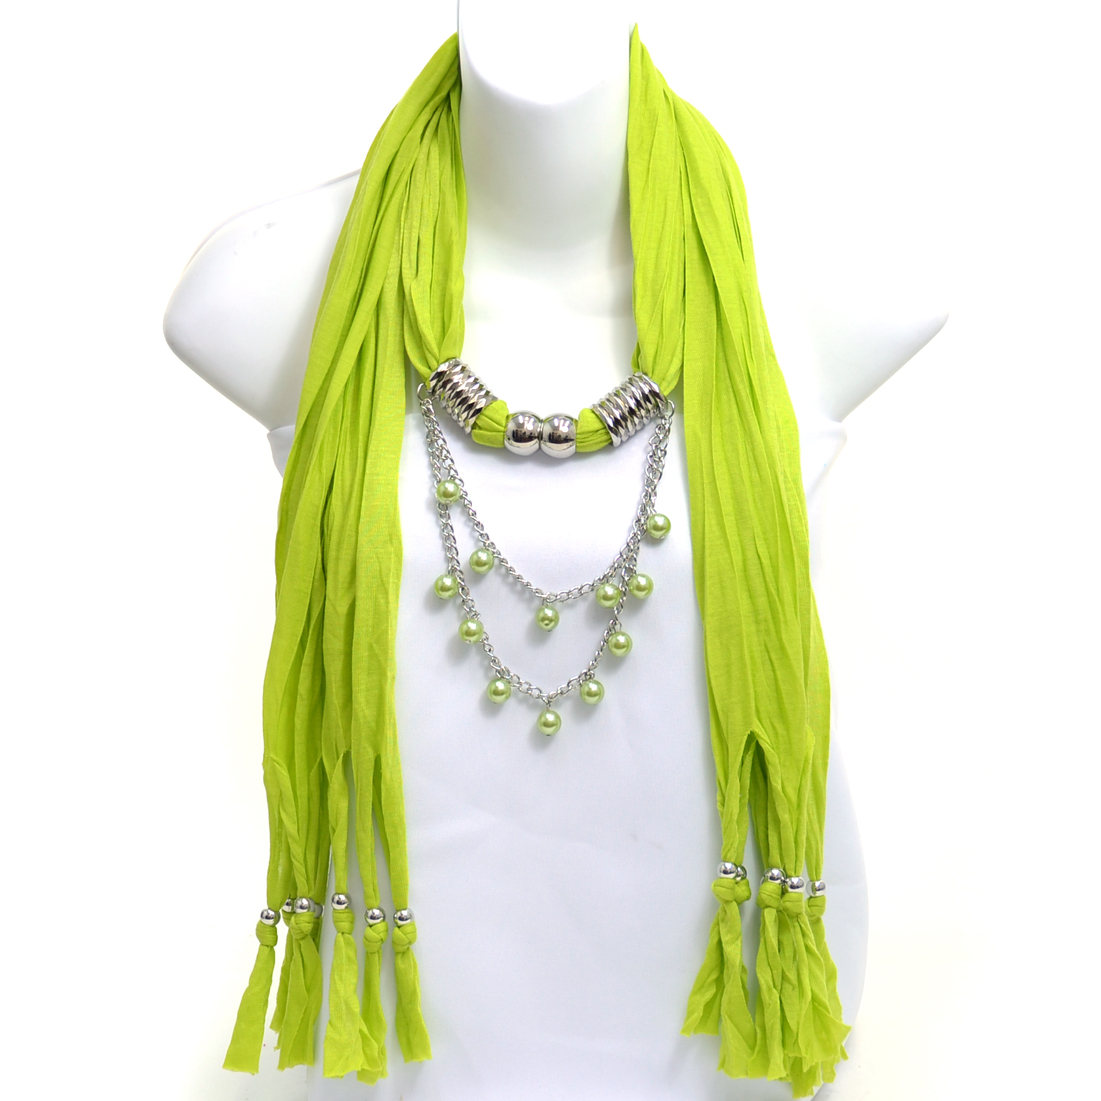 Women's Necklace Style Fashion Scarf w/ Beads Embellished Disc Charm